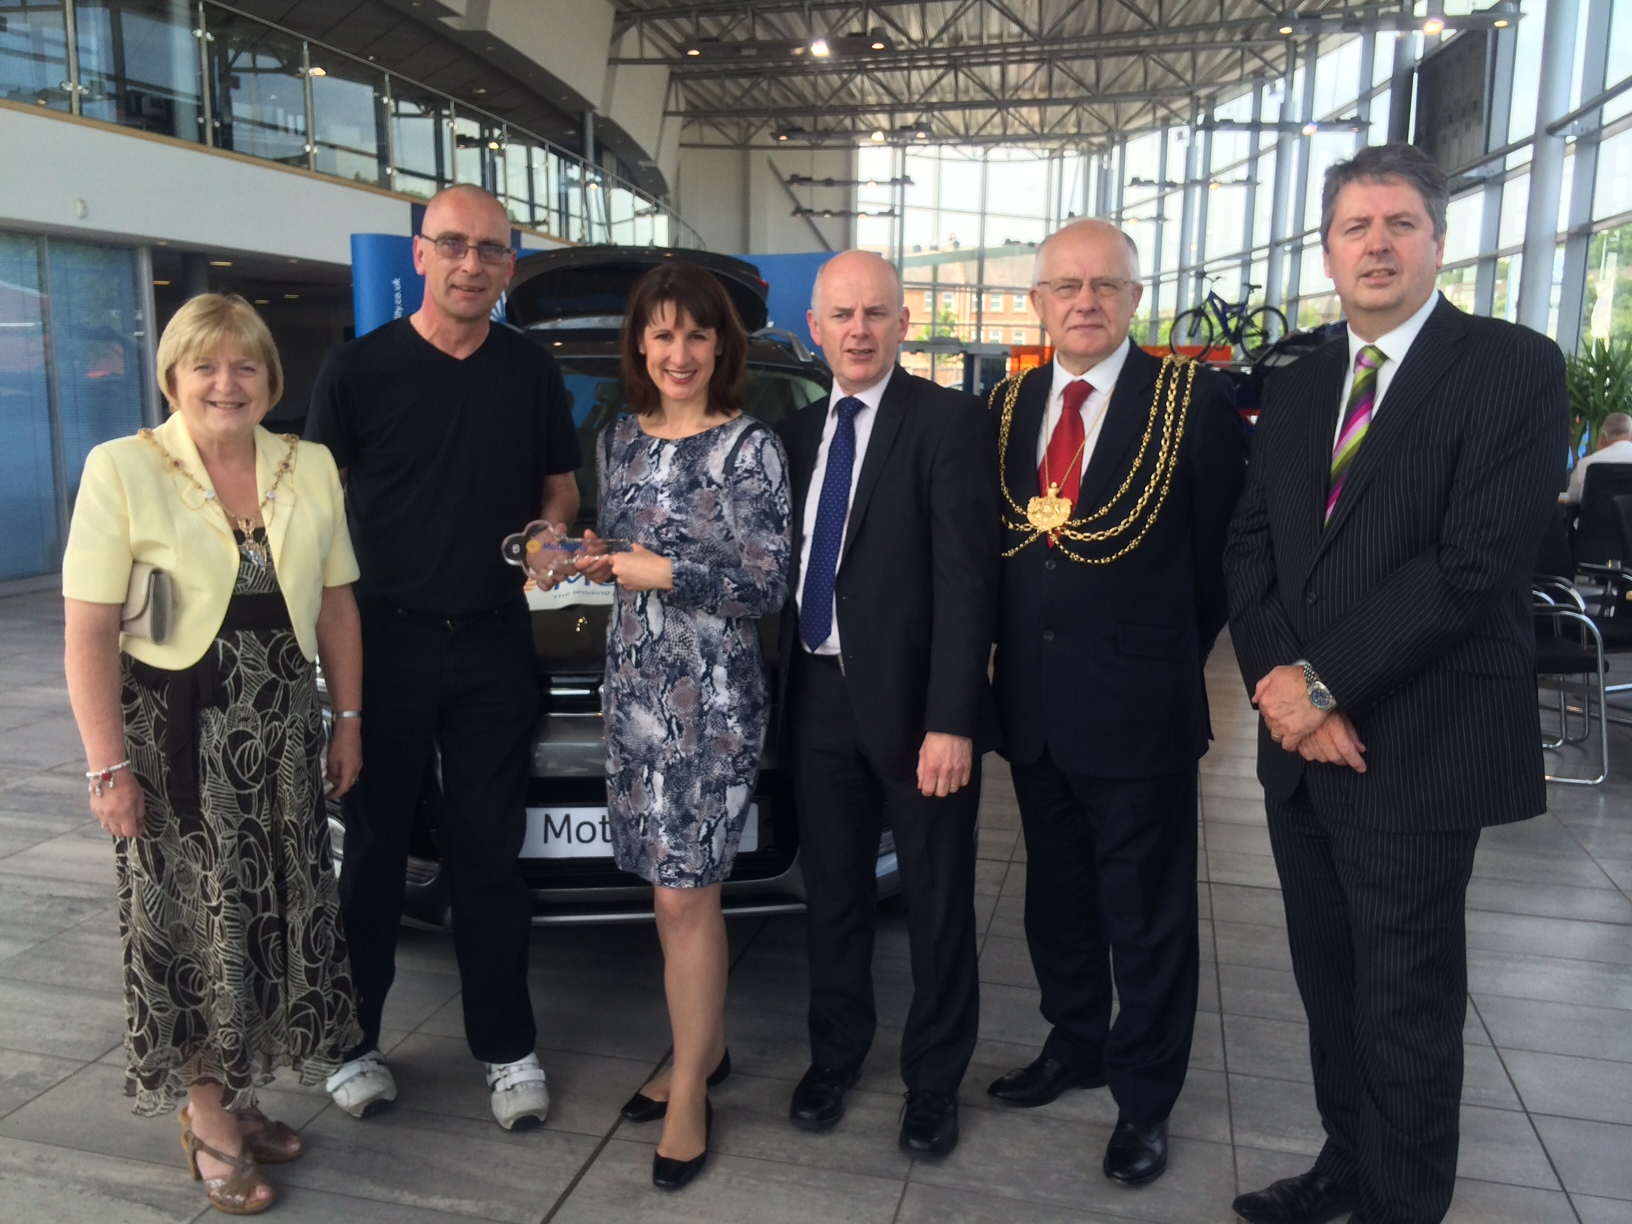 Not without merit: Reeves presents constituent with keys to Motability car